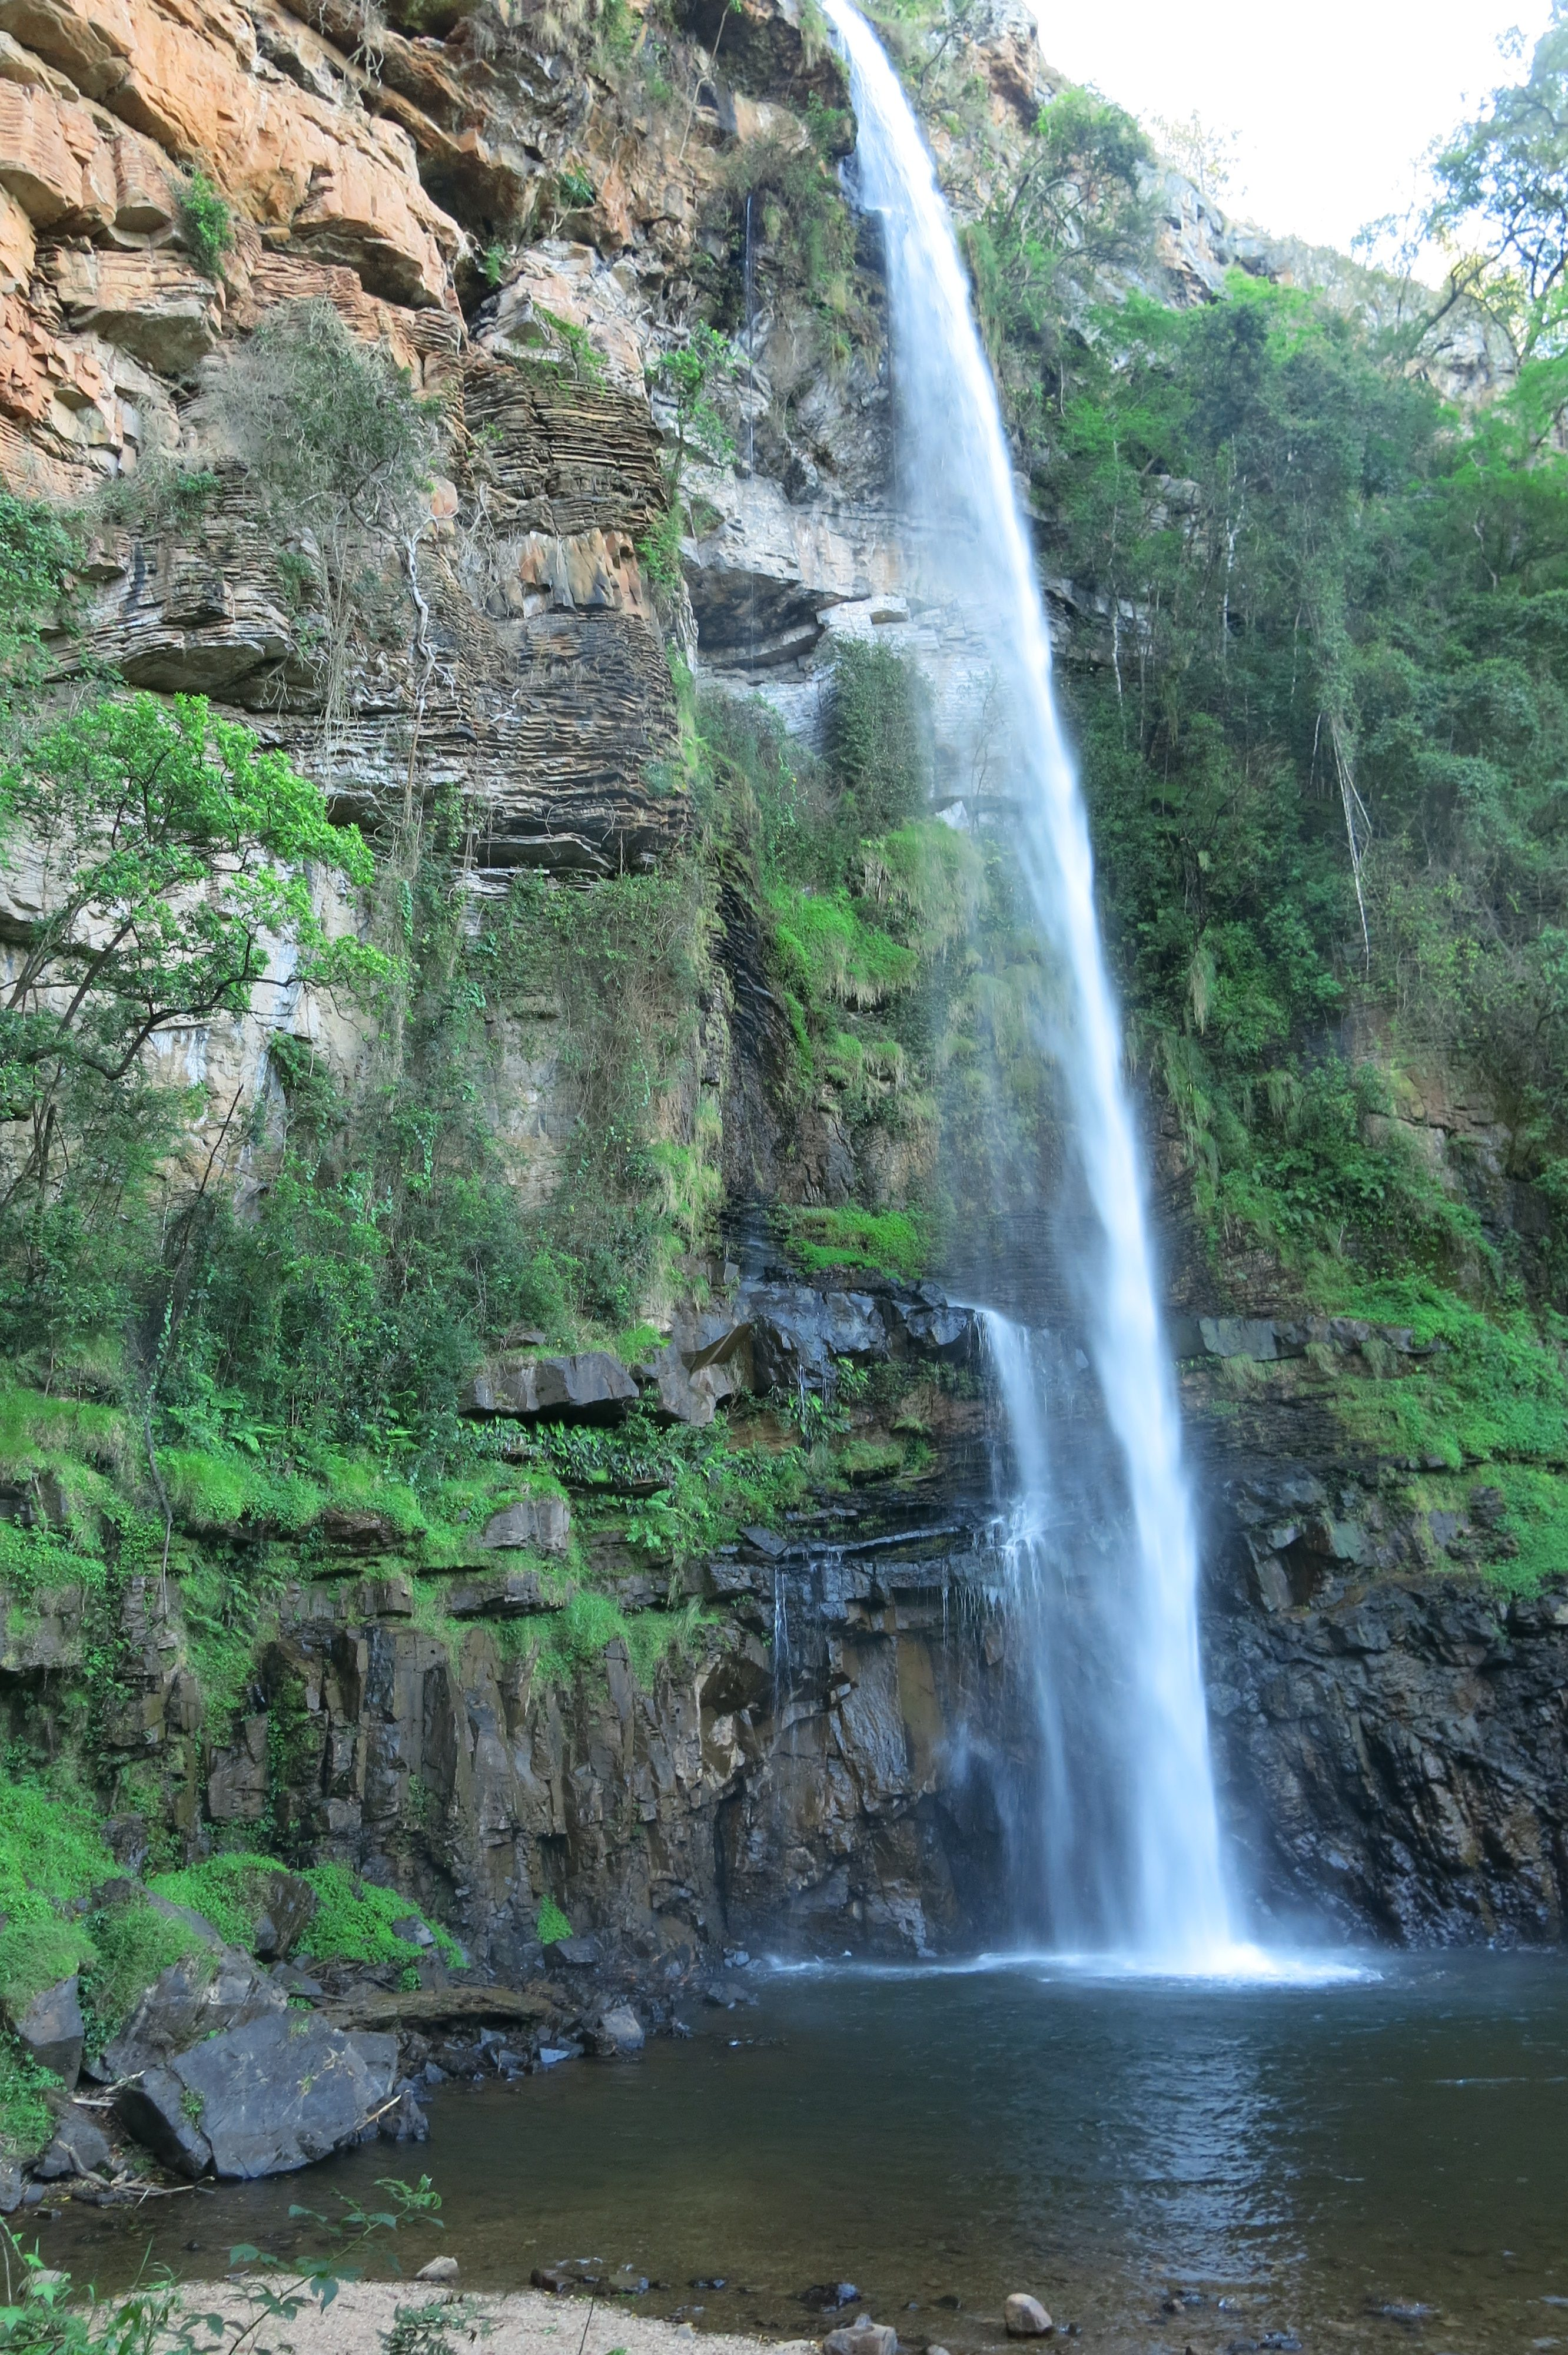 Lone Creek Falls in Mpumalanga (South Africa)